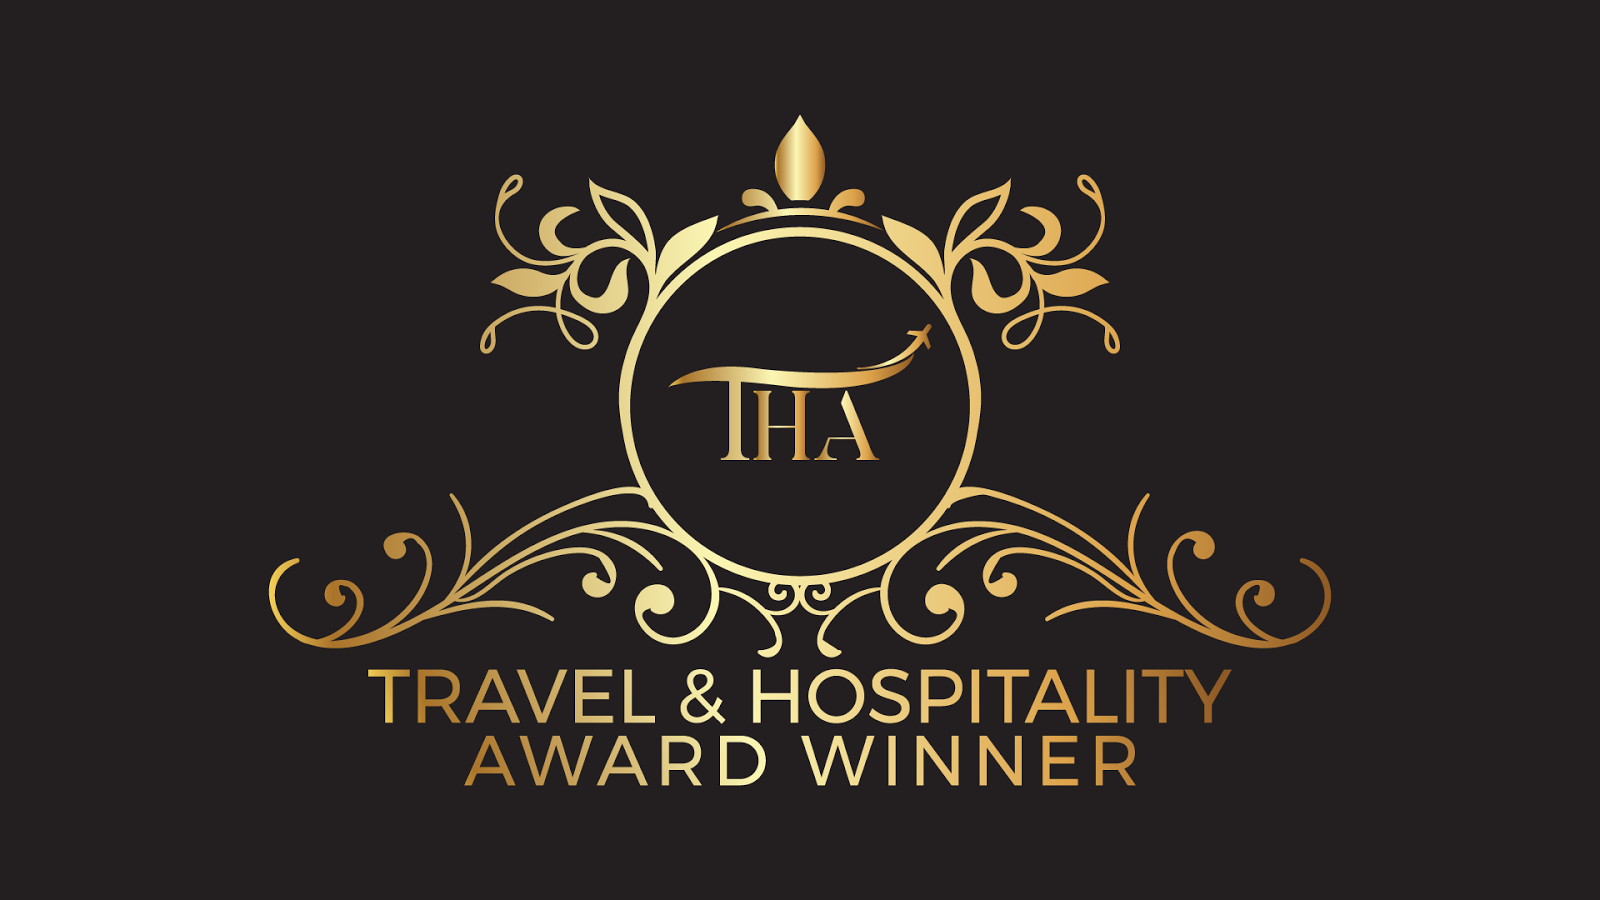 TRAVEL & HOSPITALITY AWARD WINNER